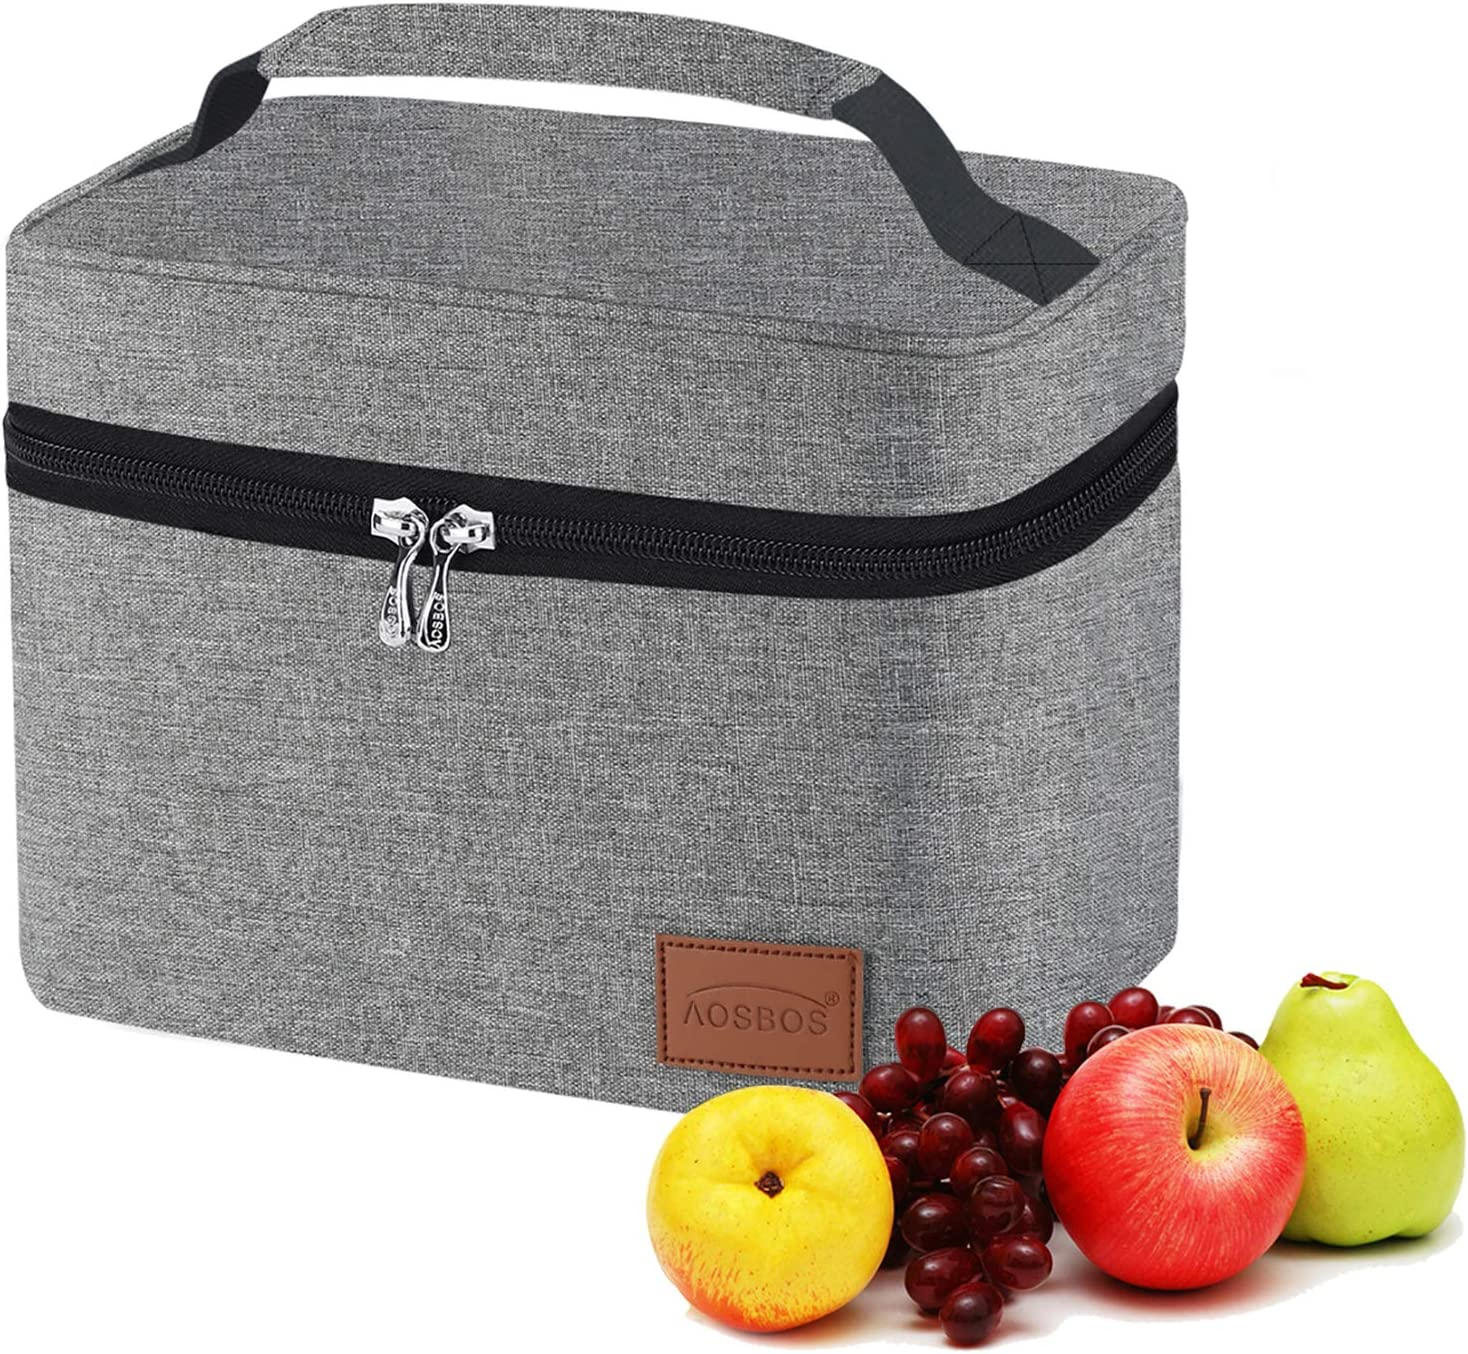 Aosbos Lunch Bag for Men Women, Insulated Cooler Bags Large Capacity Thermal Bags for Food Containers Bento Box Meal Prep Organizer, Adult Lunch Tote Bags for Work School Office Picnic 7.5L, Gray